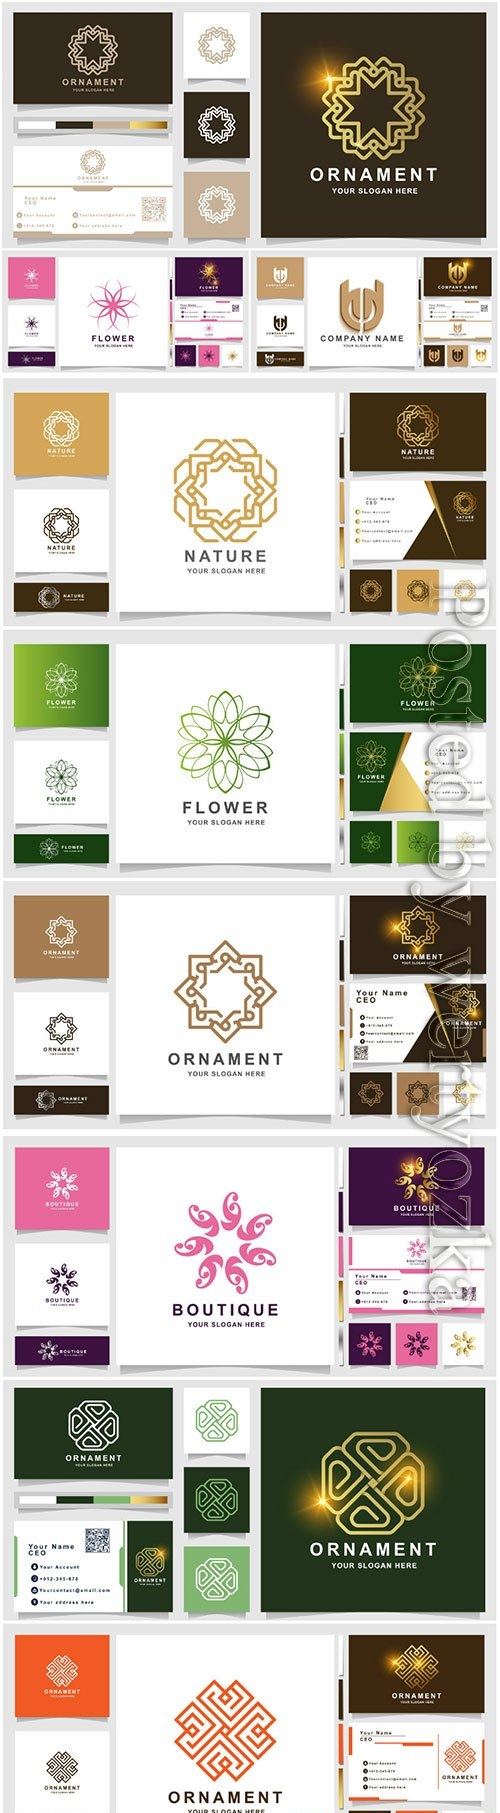 Ornament logo vector template with business card design